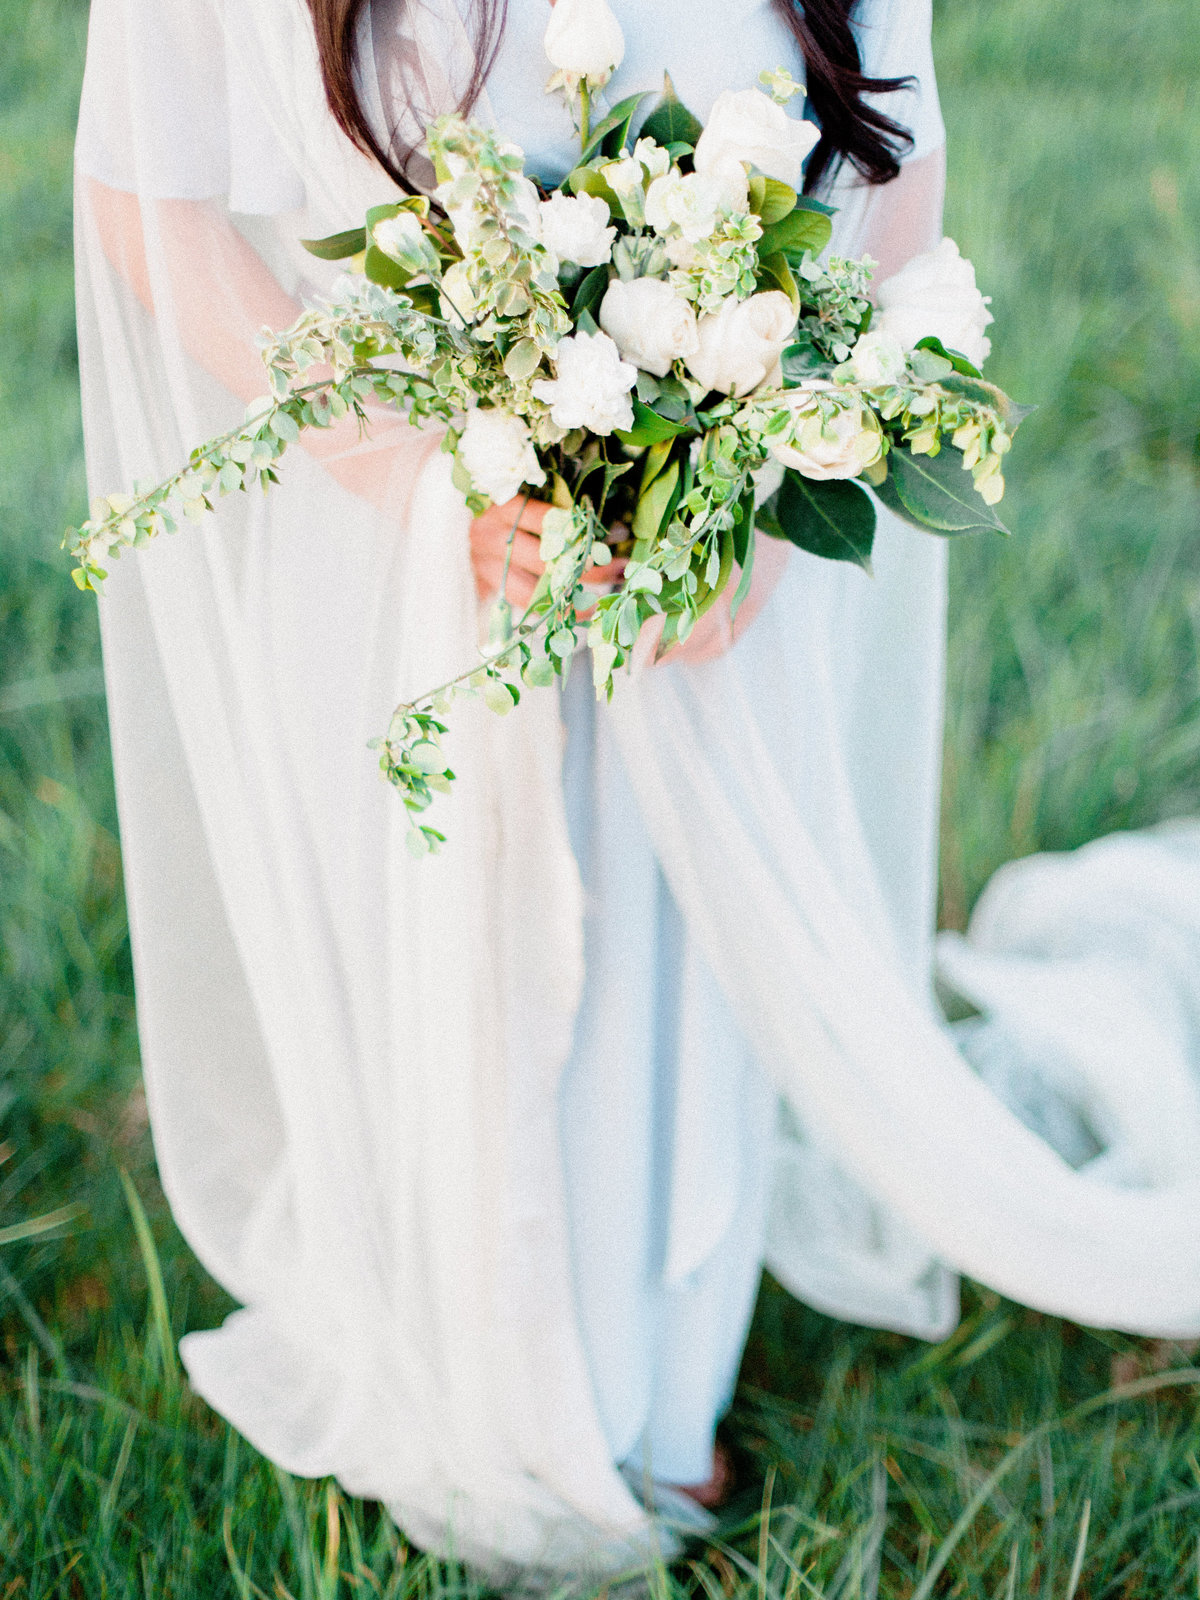 WHEN-SHE-KNEW-PHOTOGRAPHY-ADORN-MAGAZINE-ETHEREAL-BRIDAL-WEDDING-EDITORIAL-OREGON-22